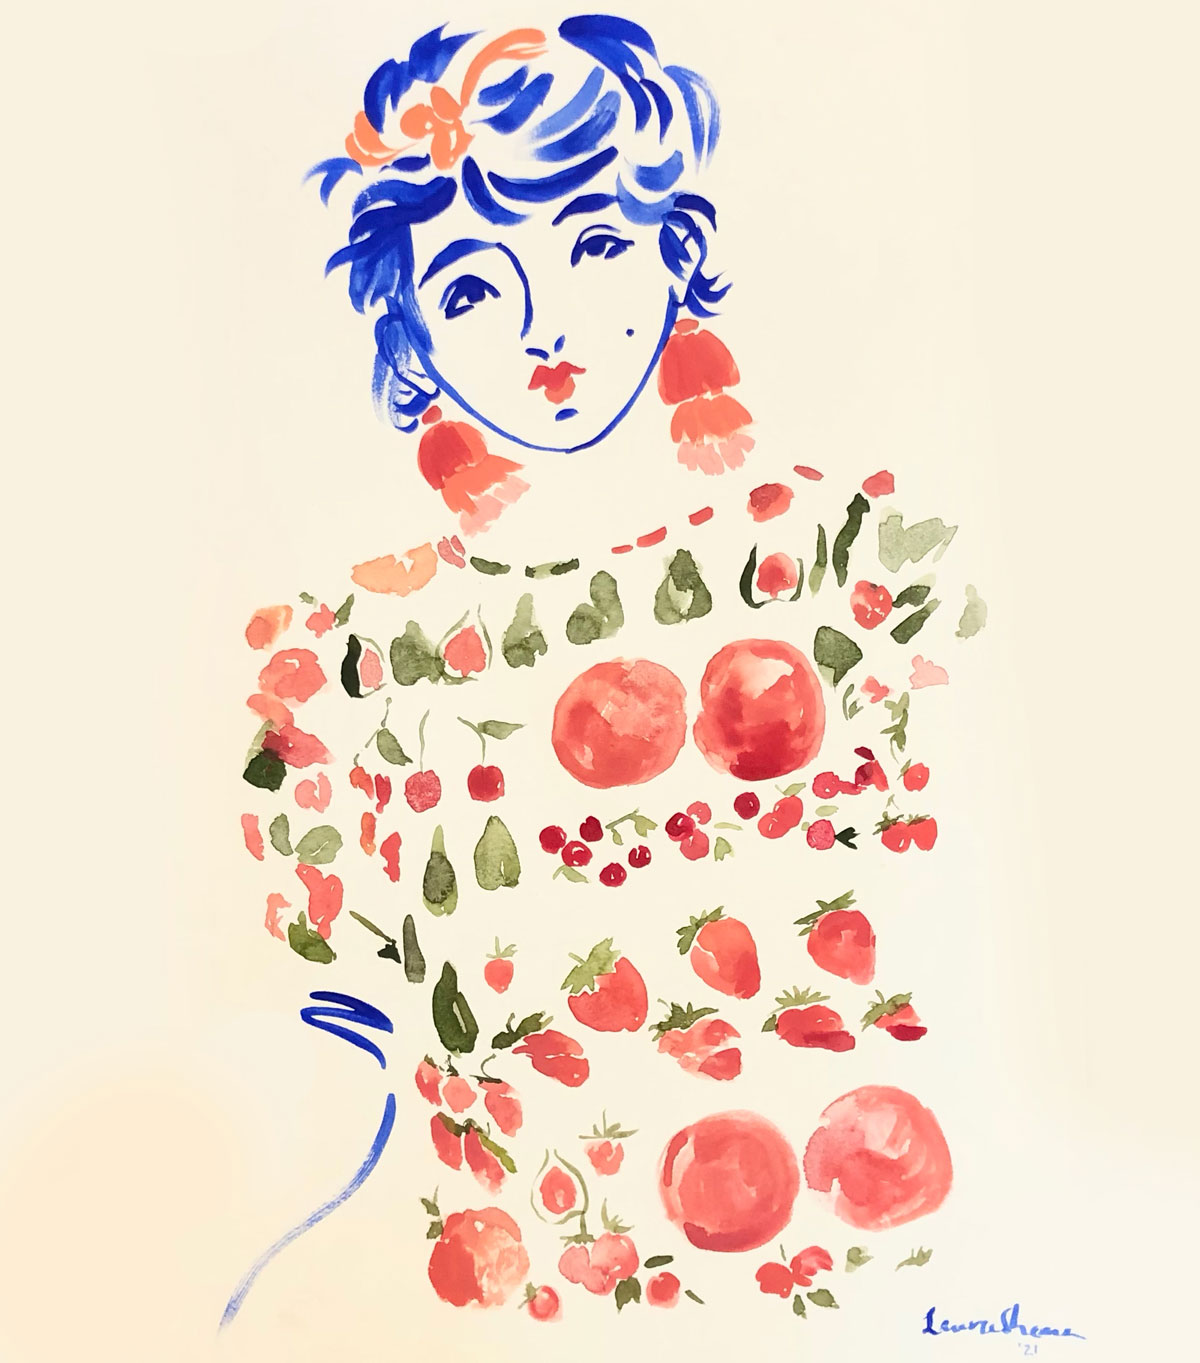 loose personality fruity dress illustration